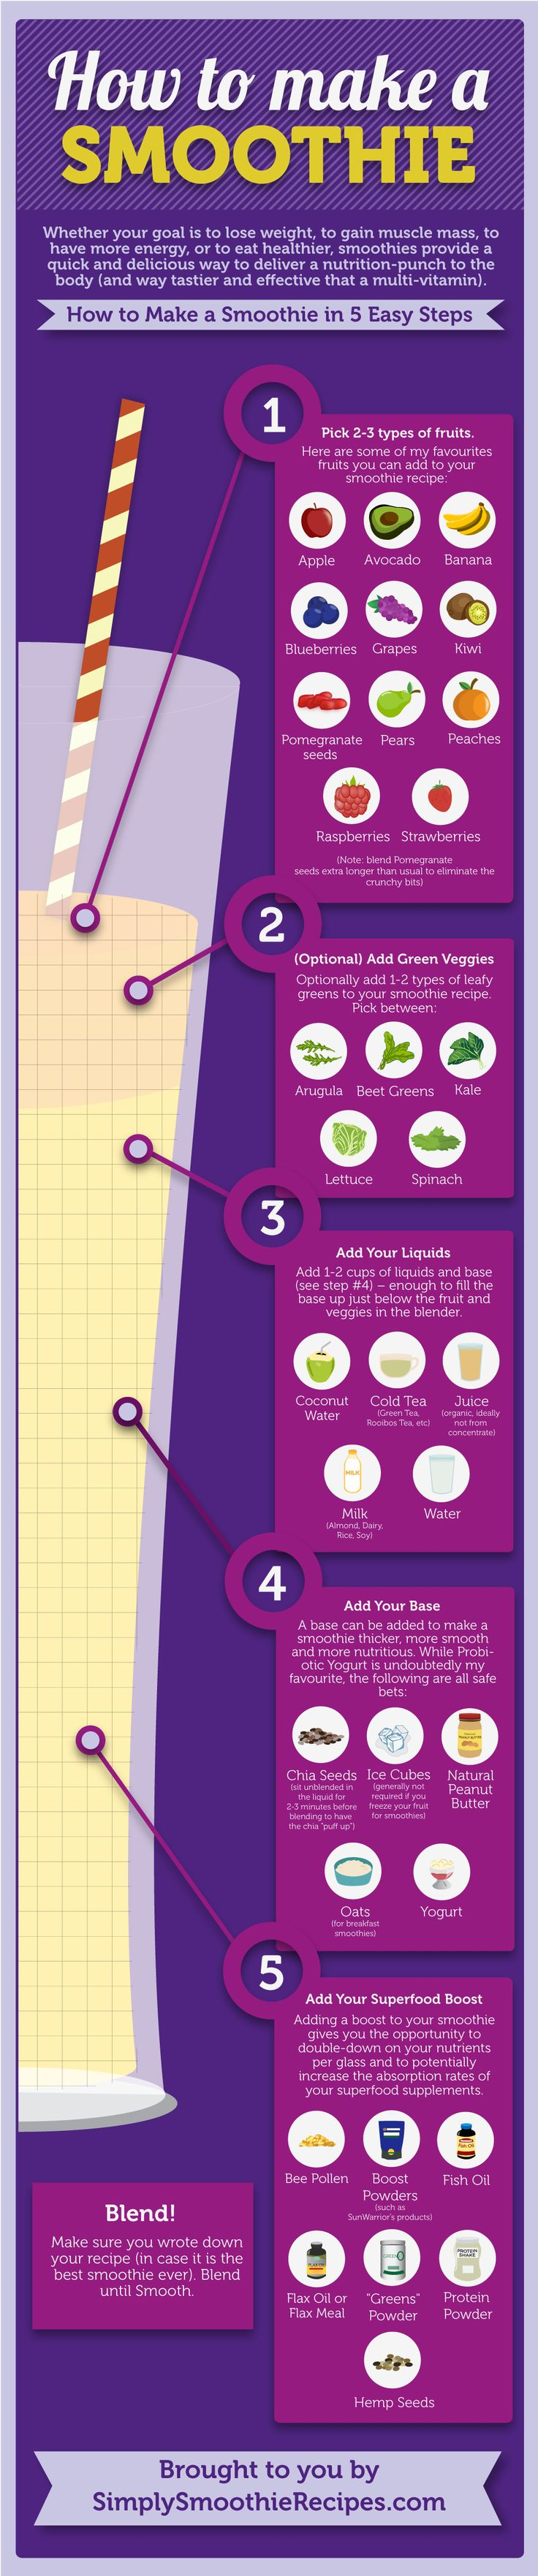 How to Make a Smoothie - check out the It Works ProFIT when adding protein powder. The smoothest and cleanest I have found. See it here: http://globalskinnywrap.myitworks.com/shop/product/315/